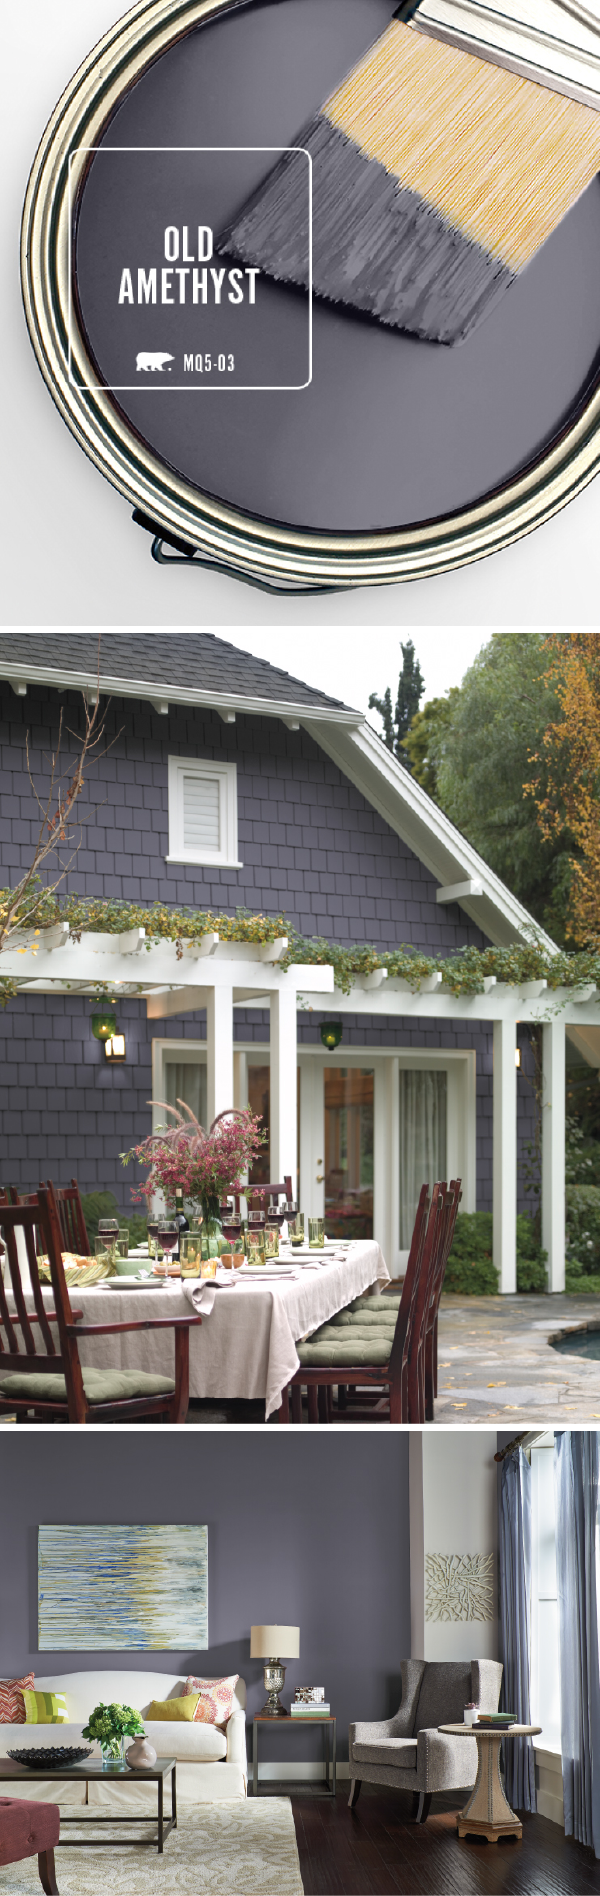 Bring-the-exterior-of-your-home-into-the-st-century-with-BEHR%E2%80%99s-Color-of-the-Month-O-wallpaper-wp4405367